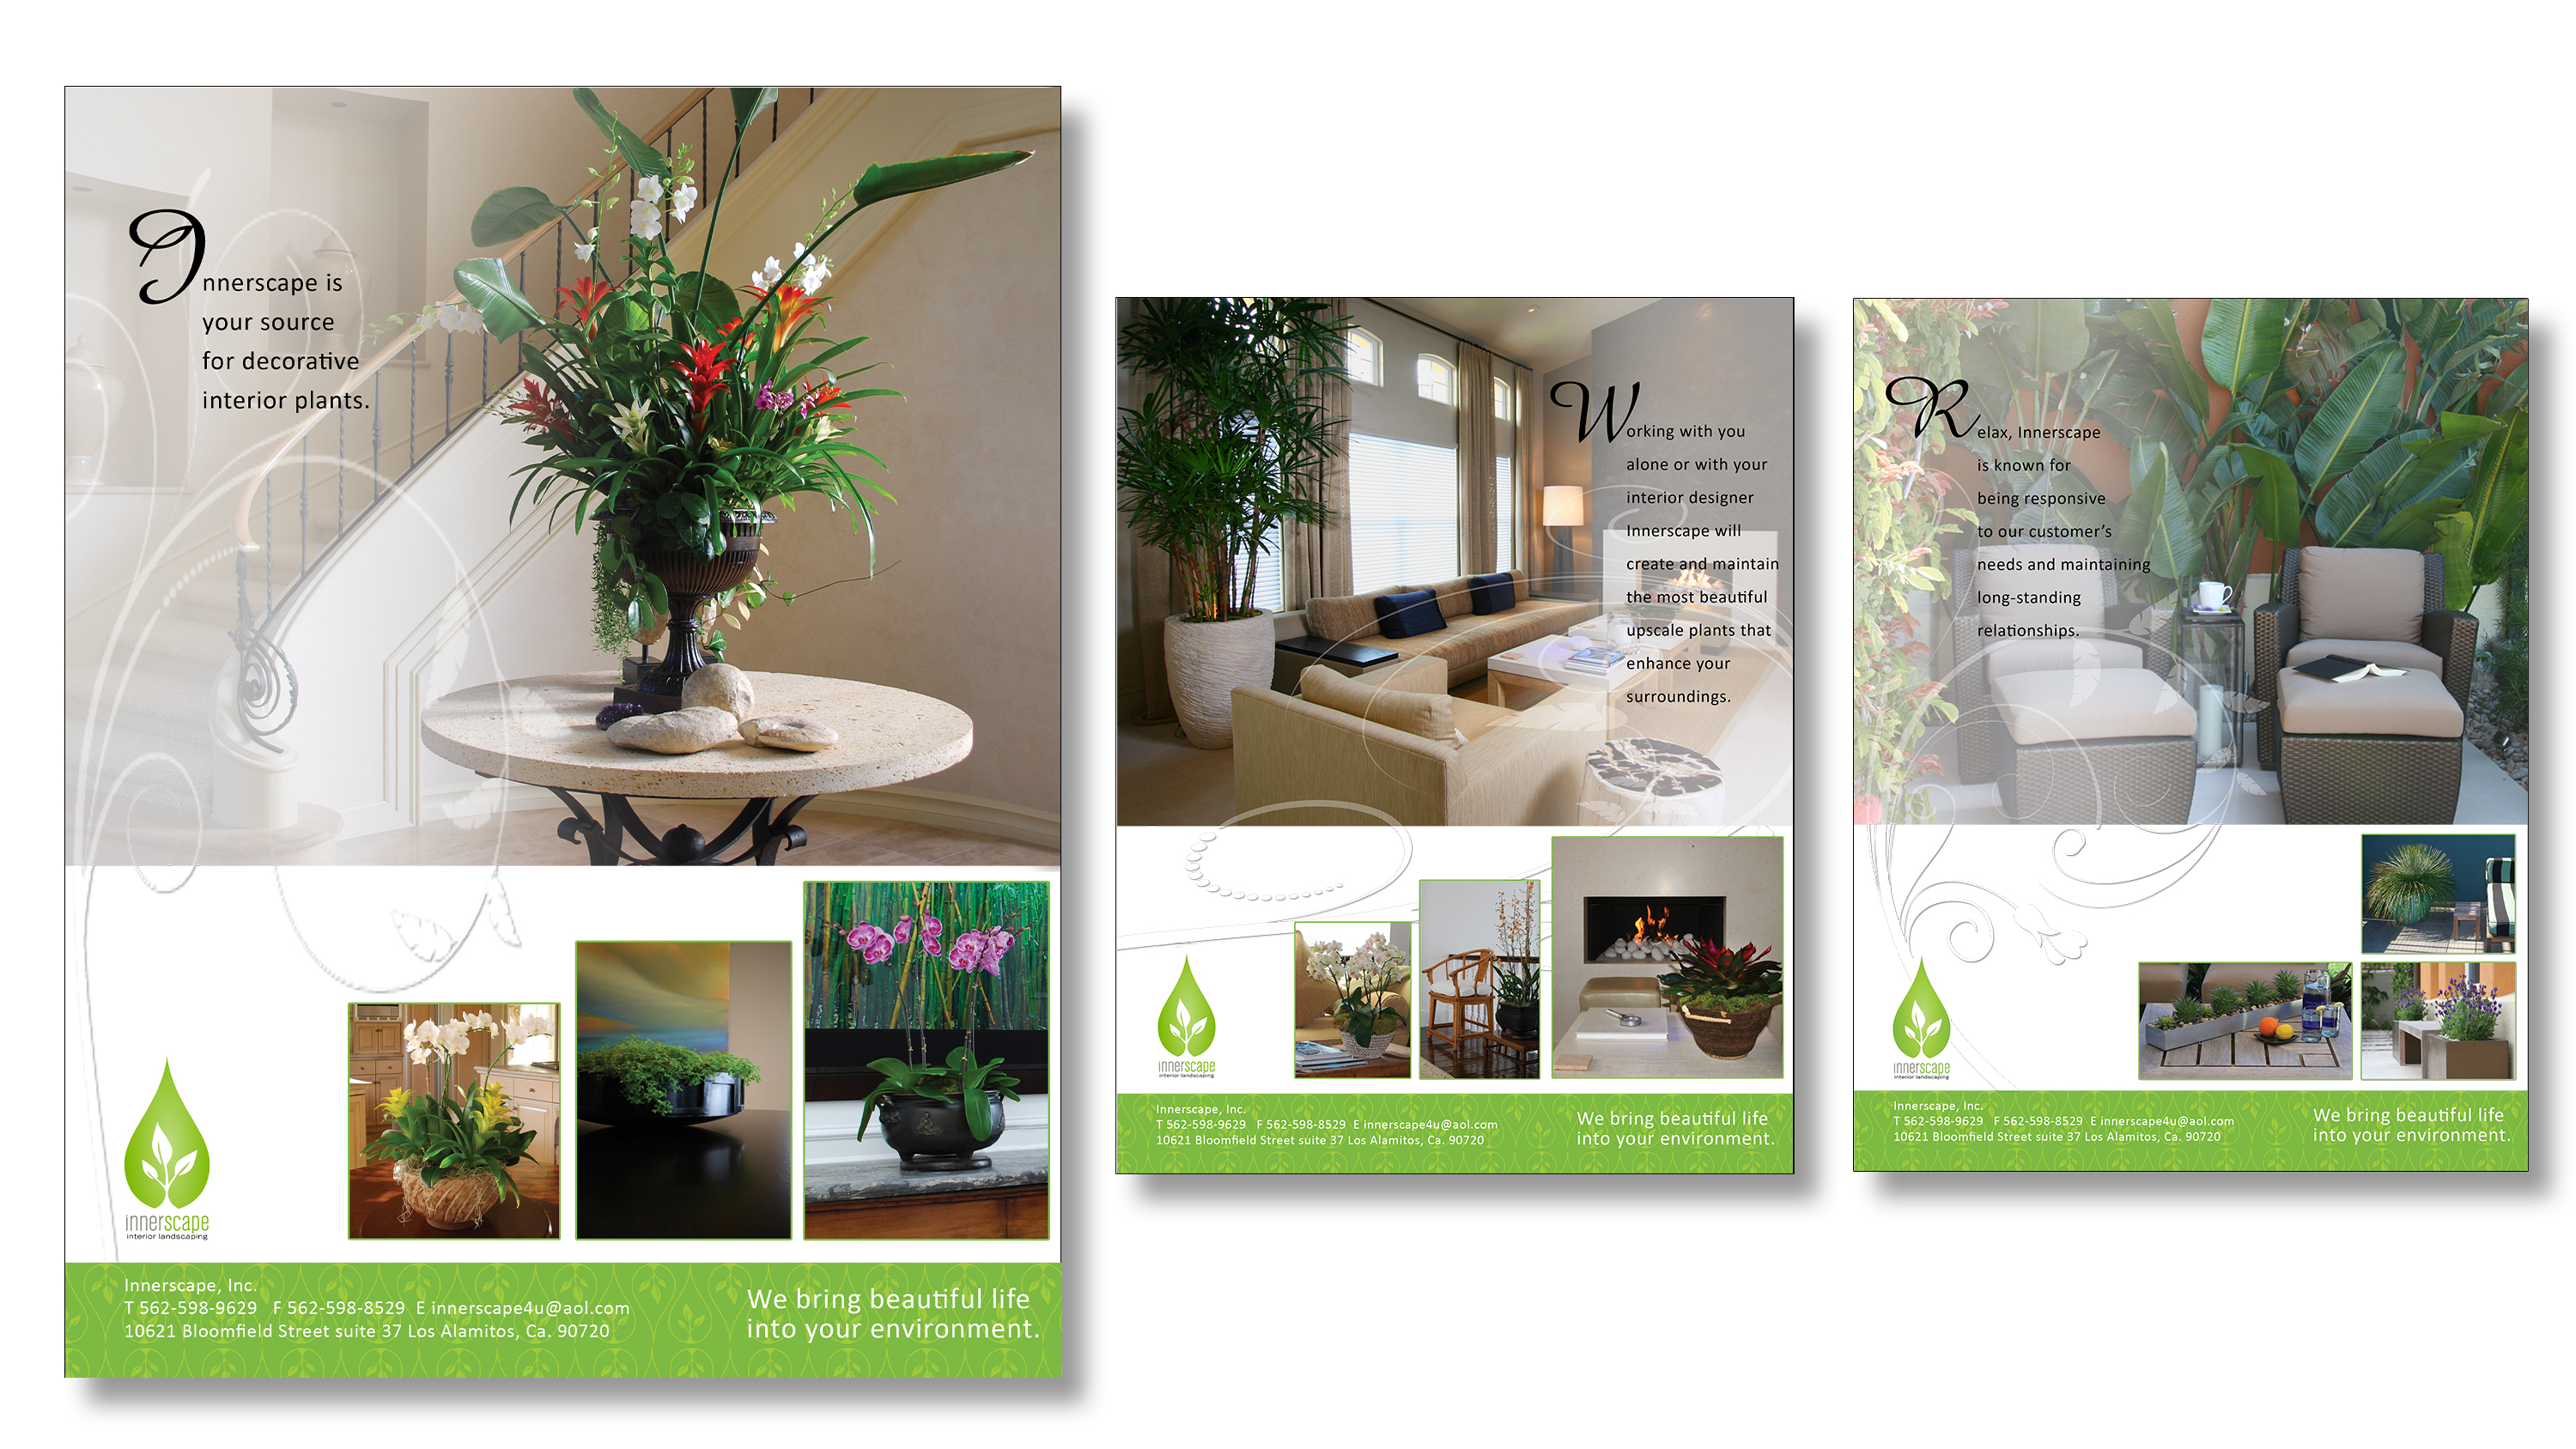 Innerscape landscaping trade ads